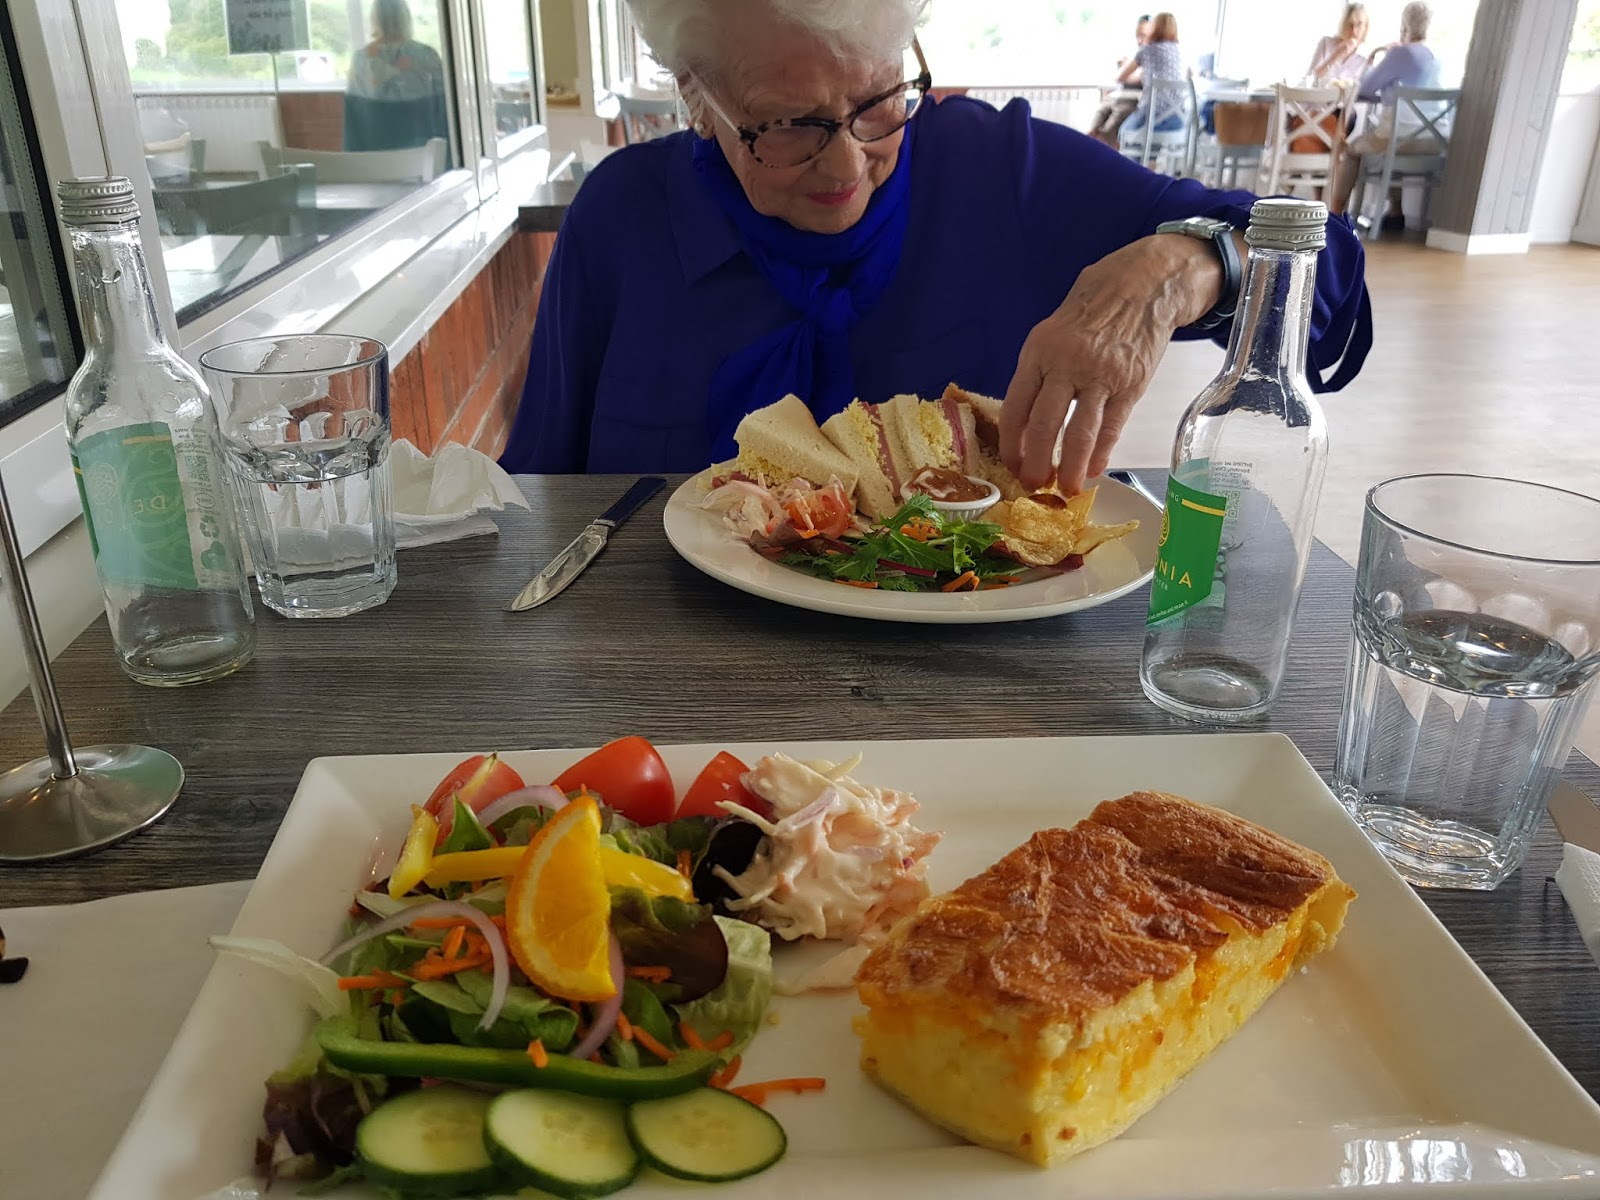 Lunch for two at Otter Garden Centre near Plymouth